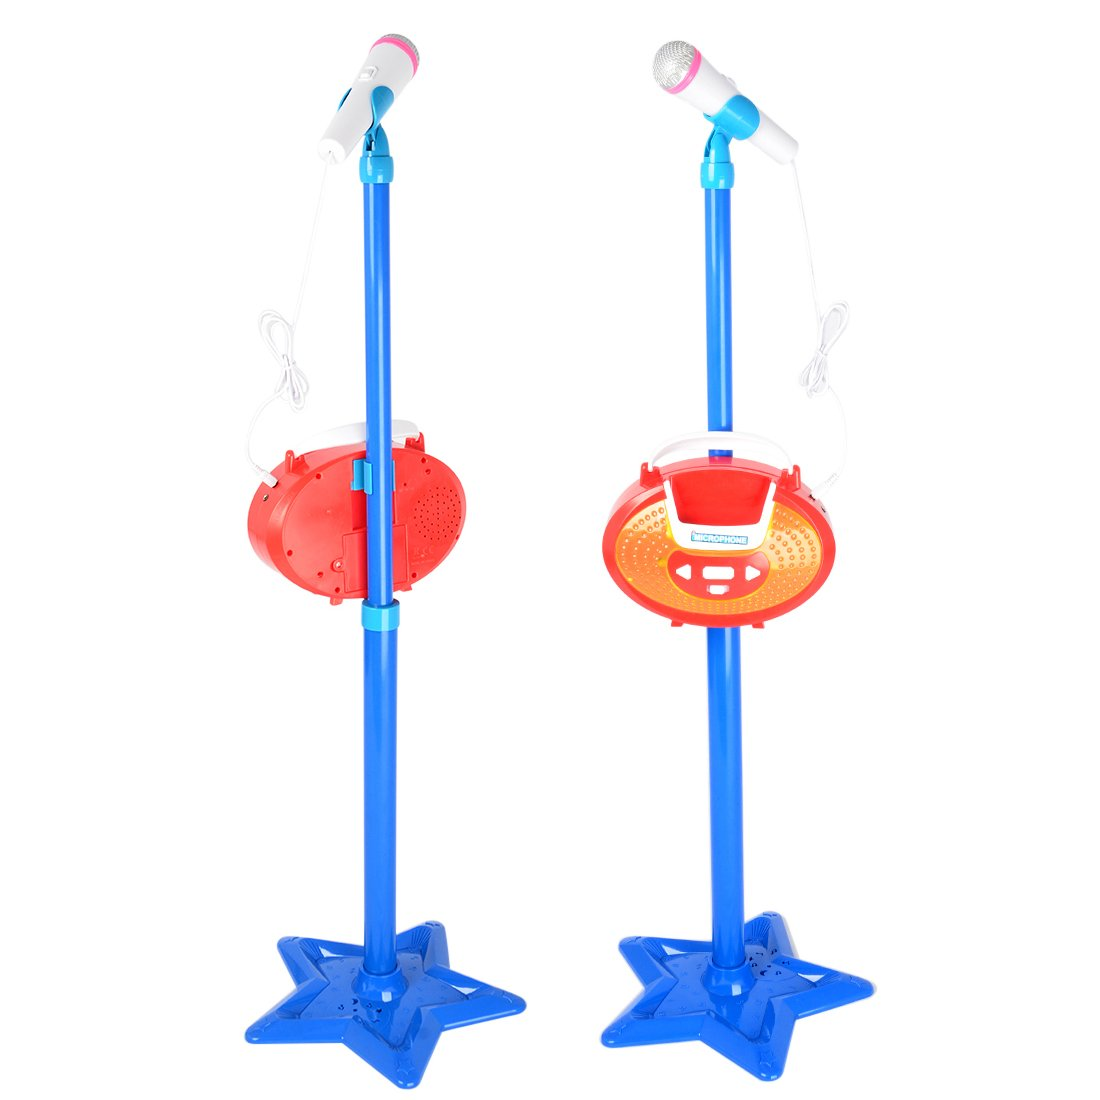 PeleusTech® Kids Karaoke Machine Adjustable Microphone Toy Star Base Stand Music Play Toy - (Blue)